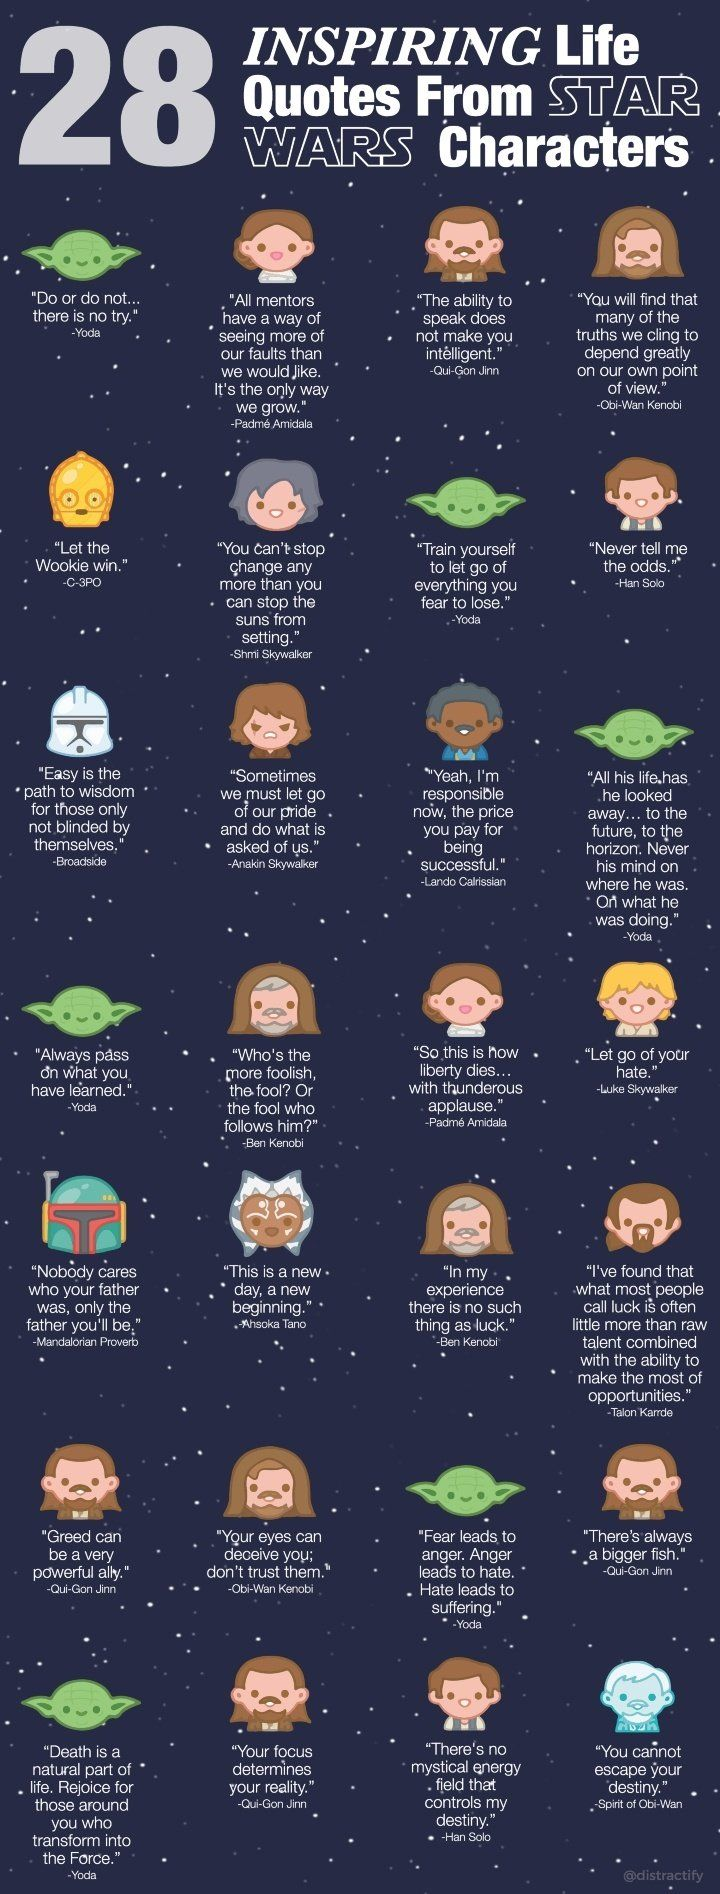 28 Wise Quotes From Star Wars That Will Inspire Your Life